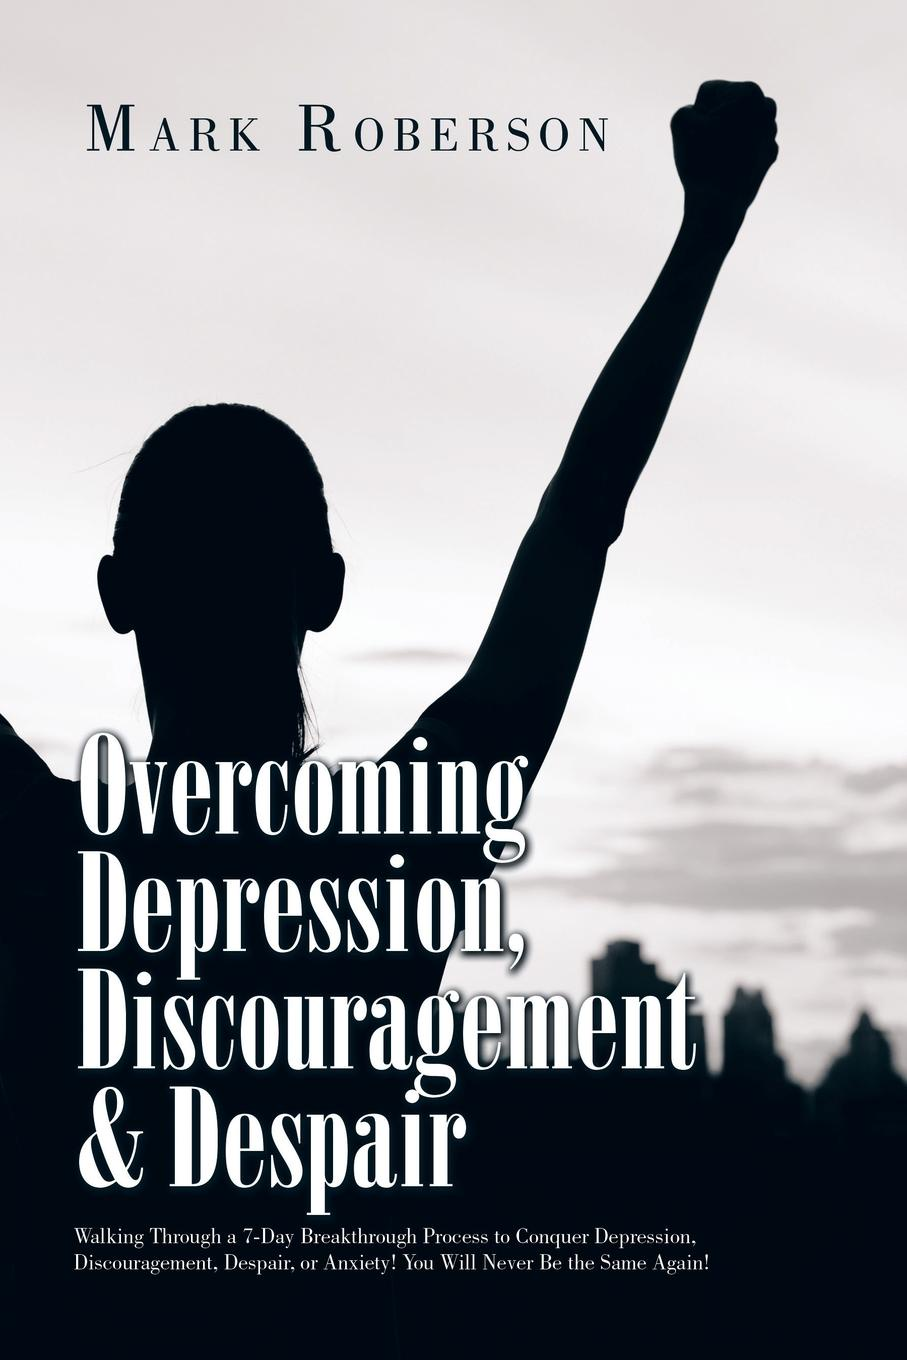 Mark Roberson Overcoming Depression, Discouragement & Despair. Walking Through a 7-Day Breakthrough Process to Conquer Depression, Discouragement, Despair, or Anxiety! You Will Never Be the Same Again! elaine iljon foreman overcoming depression for dummies